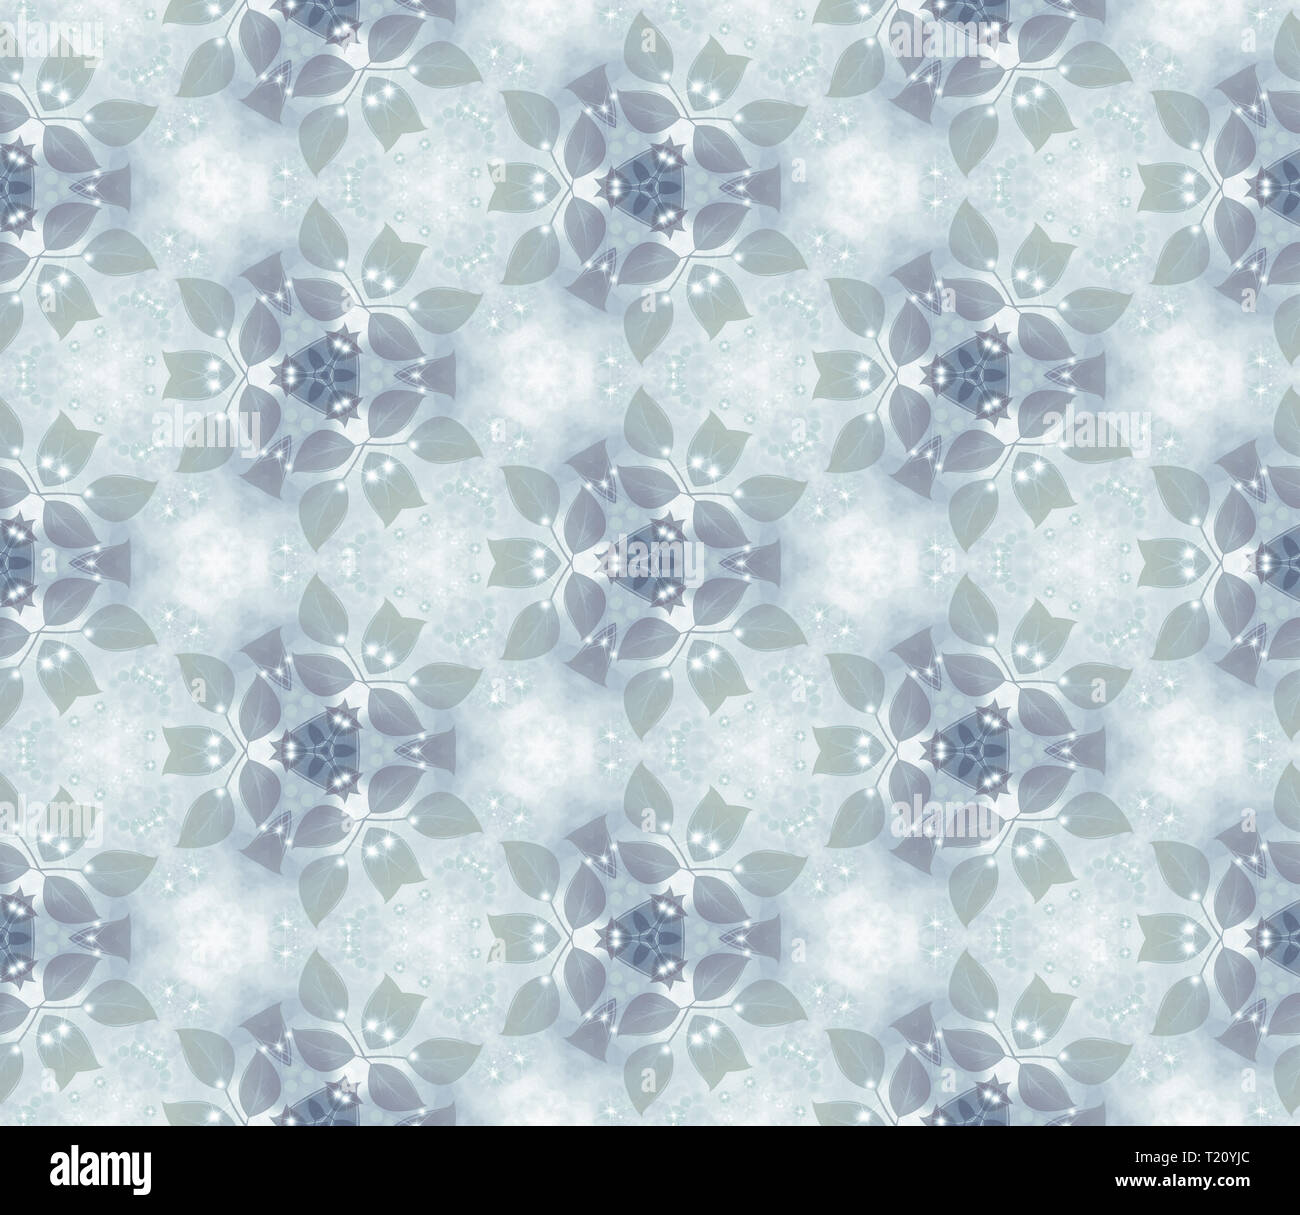 Seamless air pattern, gentle leaves, gray. Vegetable wall-paper in style of a fantasy. A romantic background for design, packing paper, greeting cards - Stock Image